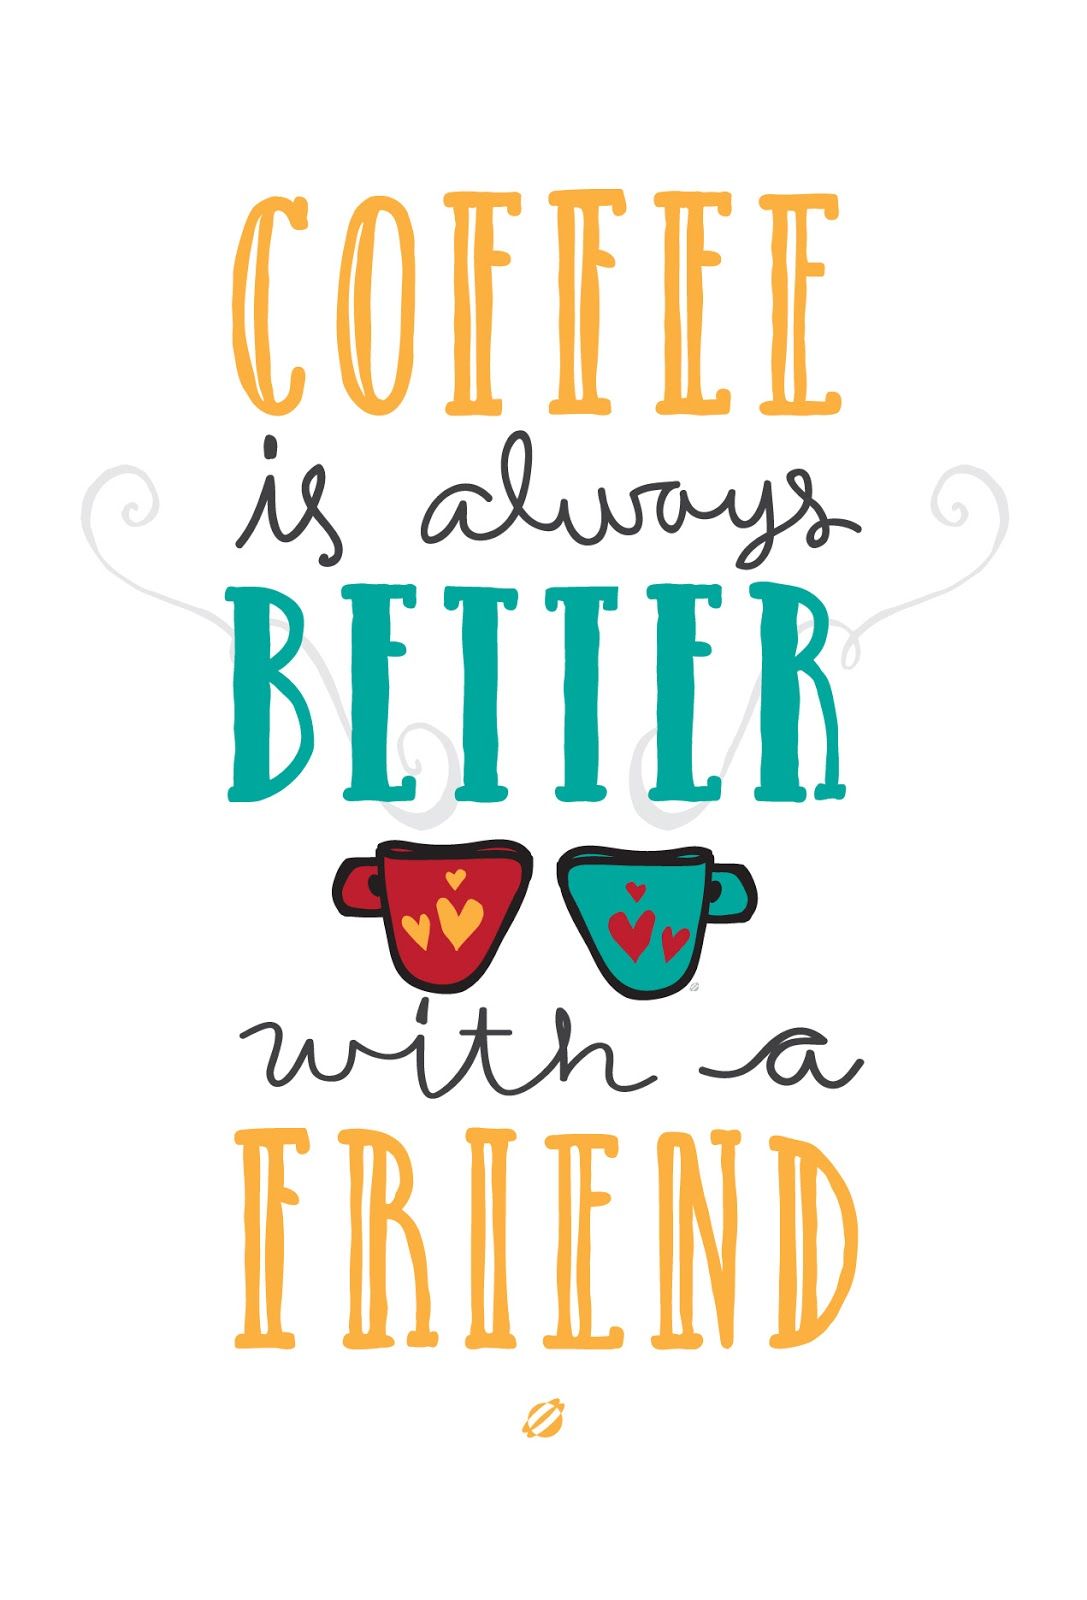 LostBumblebee ©2014 Coffee with a Friend -Free Printable - Personal Use Only.